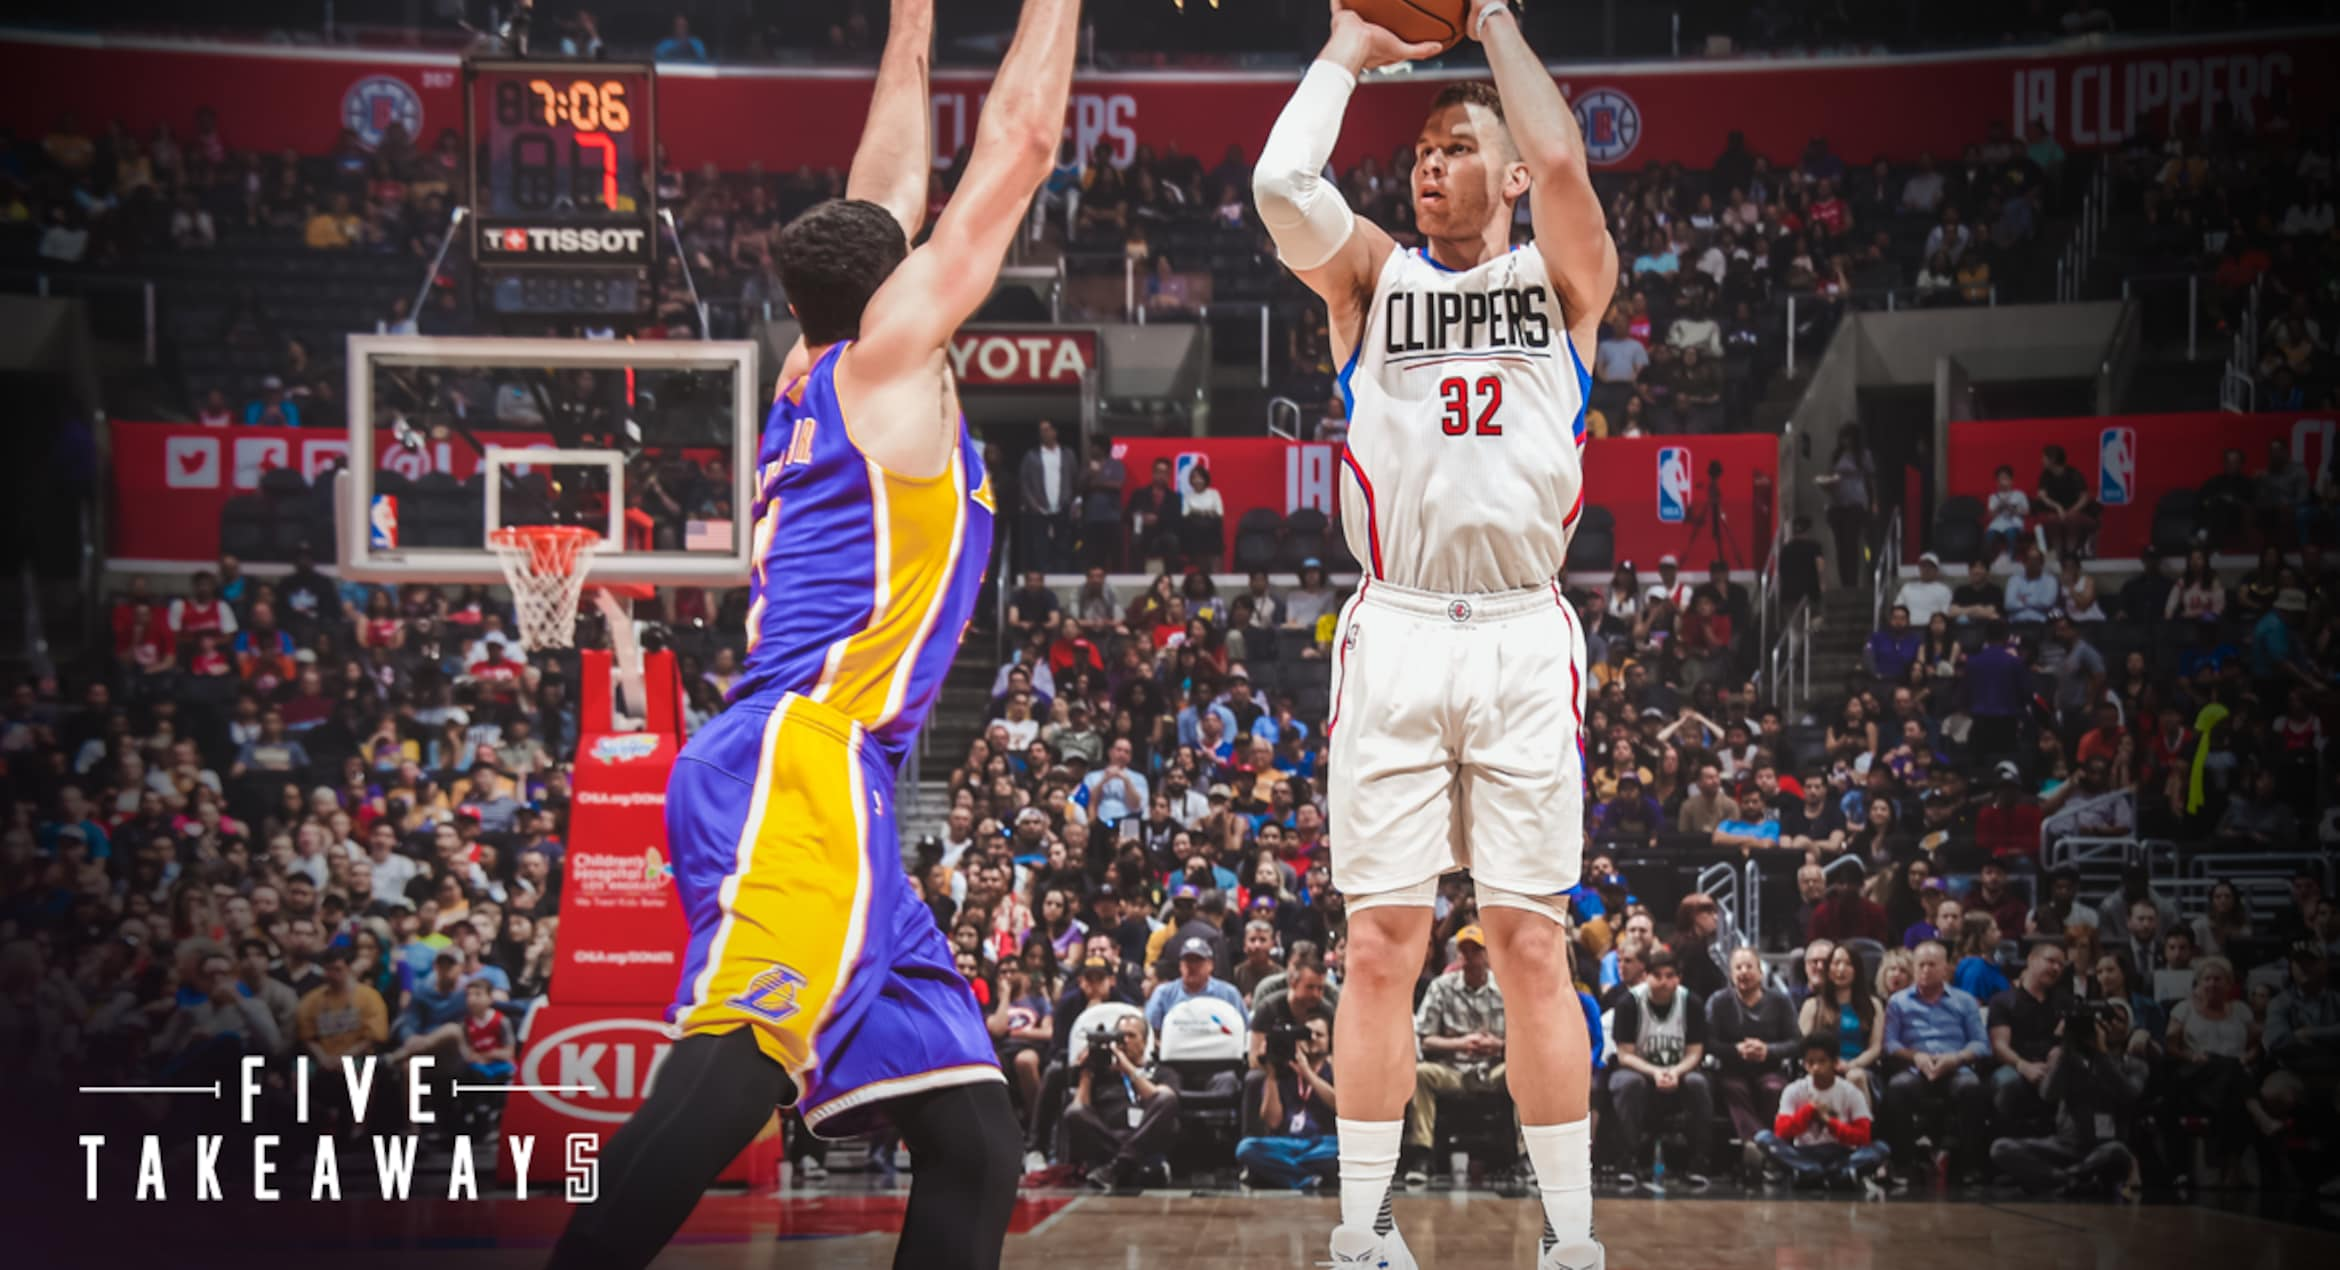 Clippers Get Third Consecutive Win And Look Ahead To Three Day Break